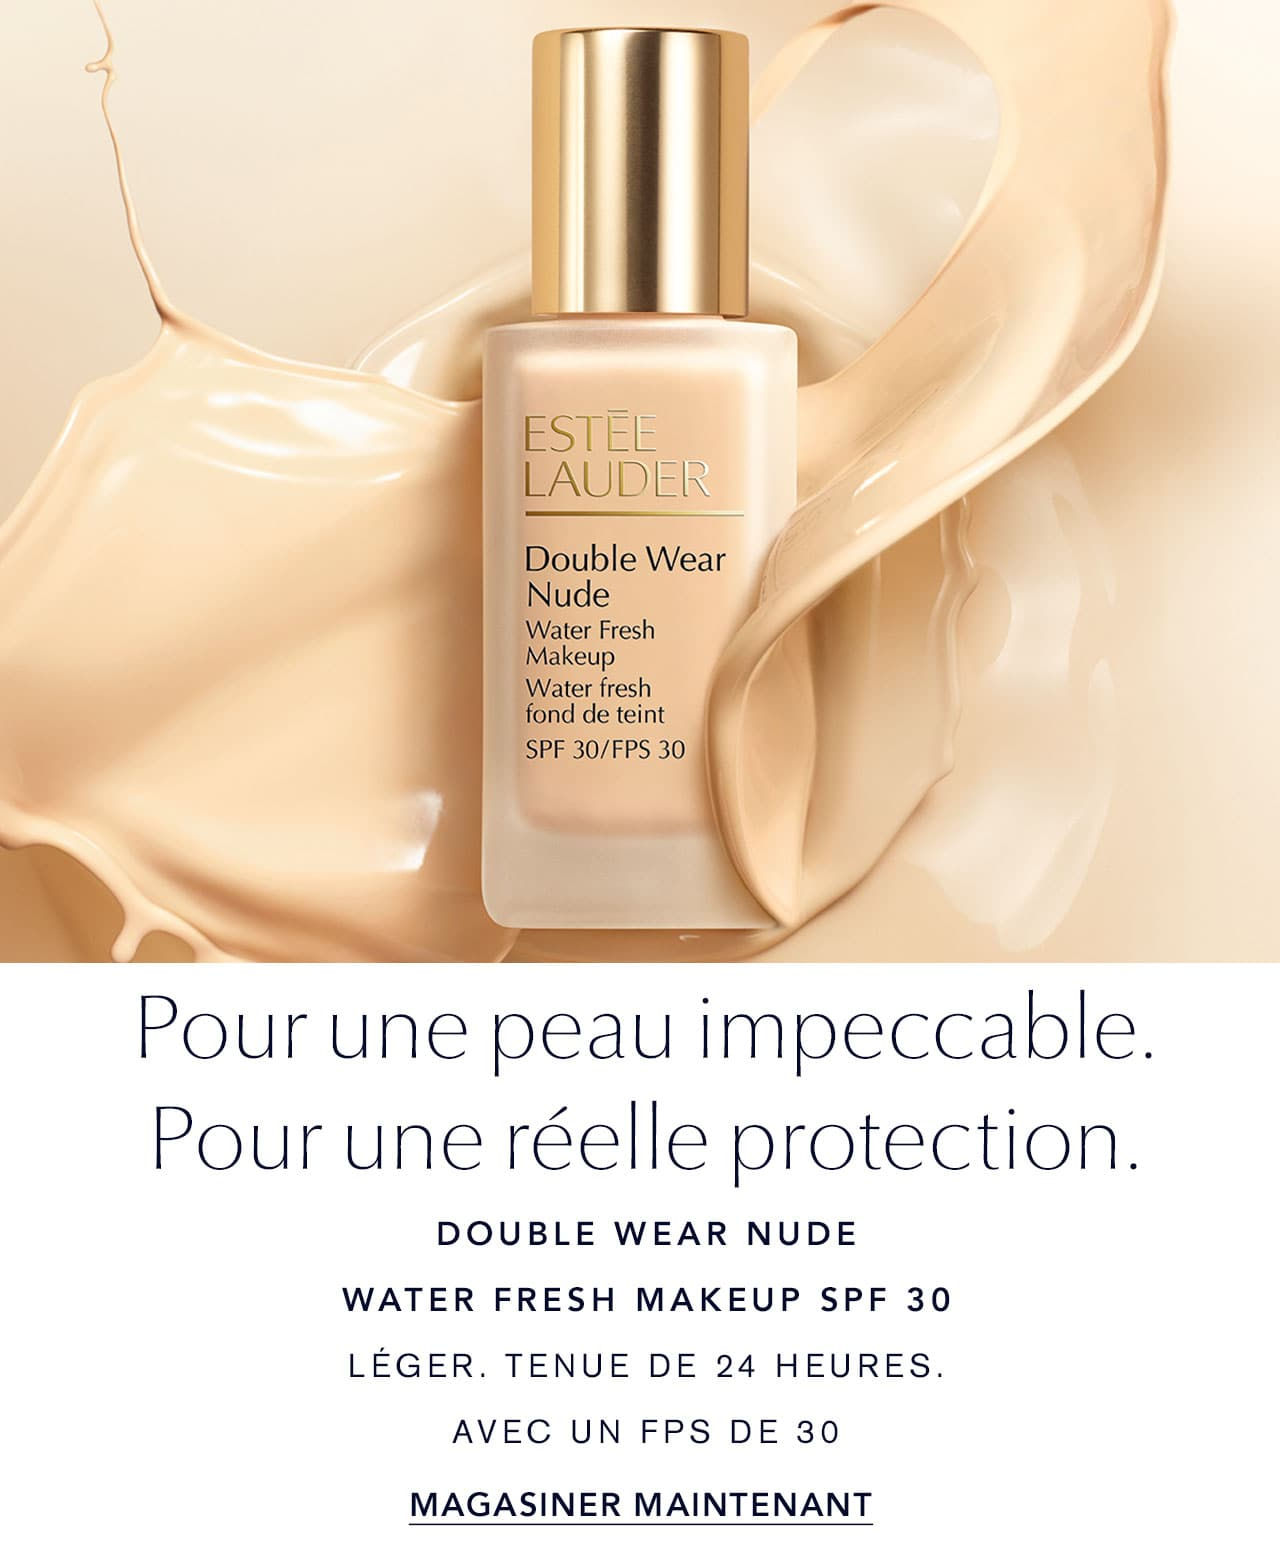 Double Wear Nude water fresh makeup SPF 30 Magasiner maintenant